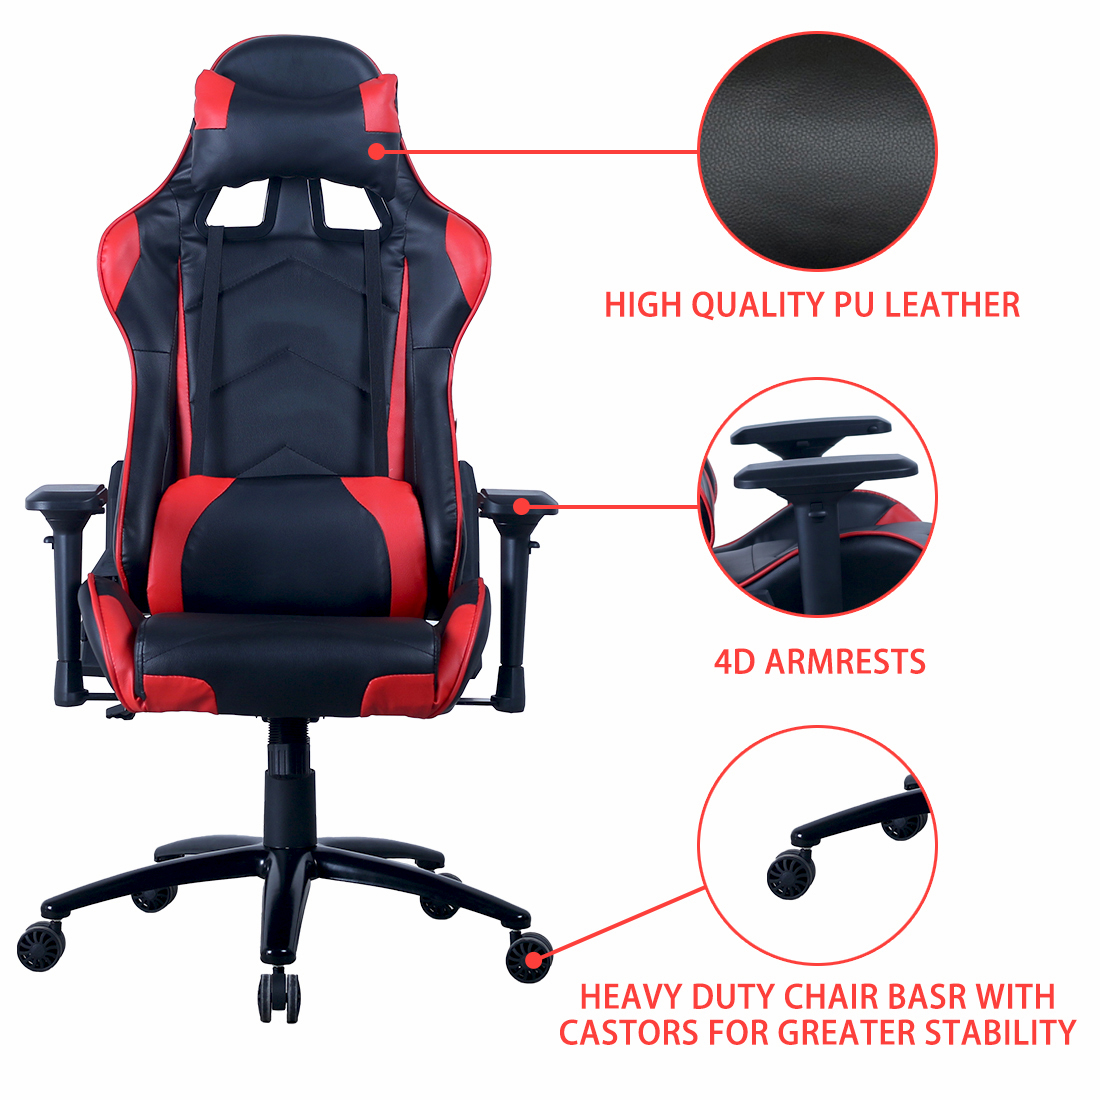 Y-2689 Modern heated ergonomic gaming chair racing style computer gamer chair for racing